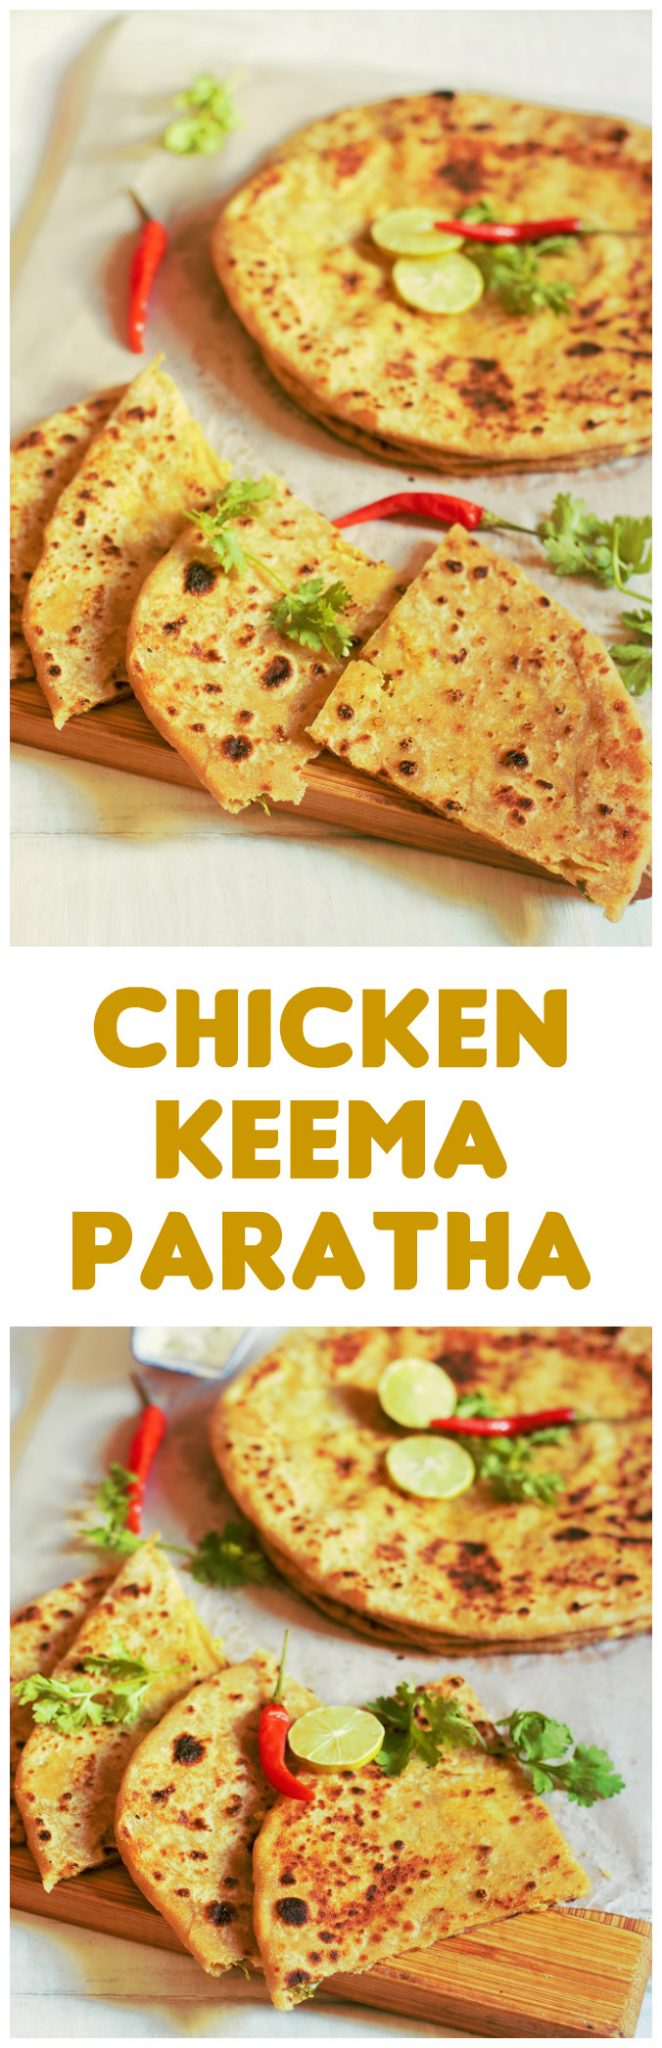 Chicken Keema Paratha Recipe-How to make chicken keema paratha-An awesome paratha stuffed with delicious mince chicken filling. #chickenparatha #chickenrecipe #indianchickenrecipe #indianrecipe #halalrecipe #chickenbread #indianbread